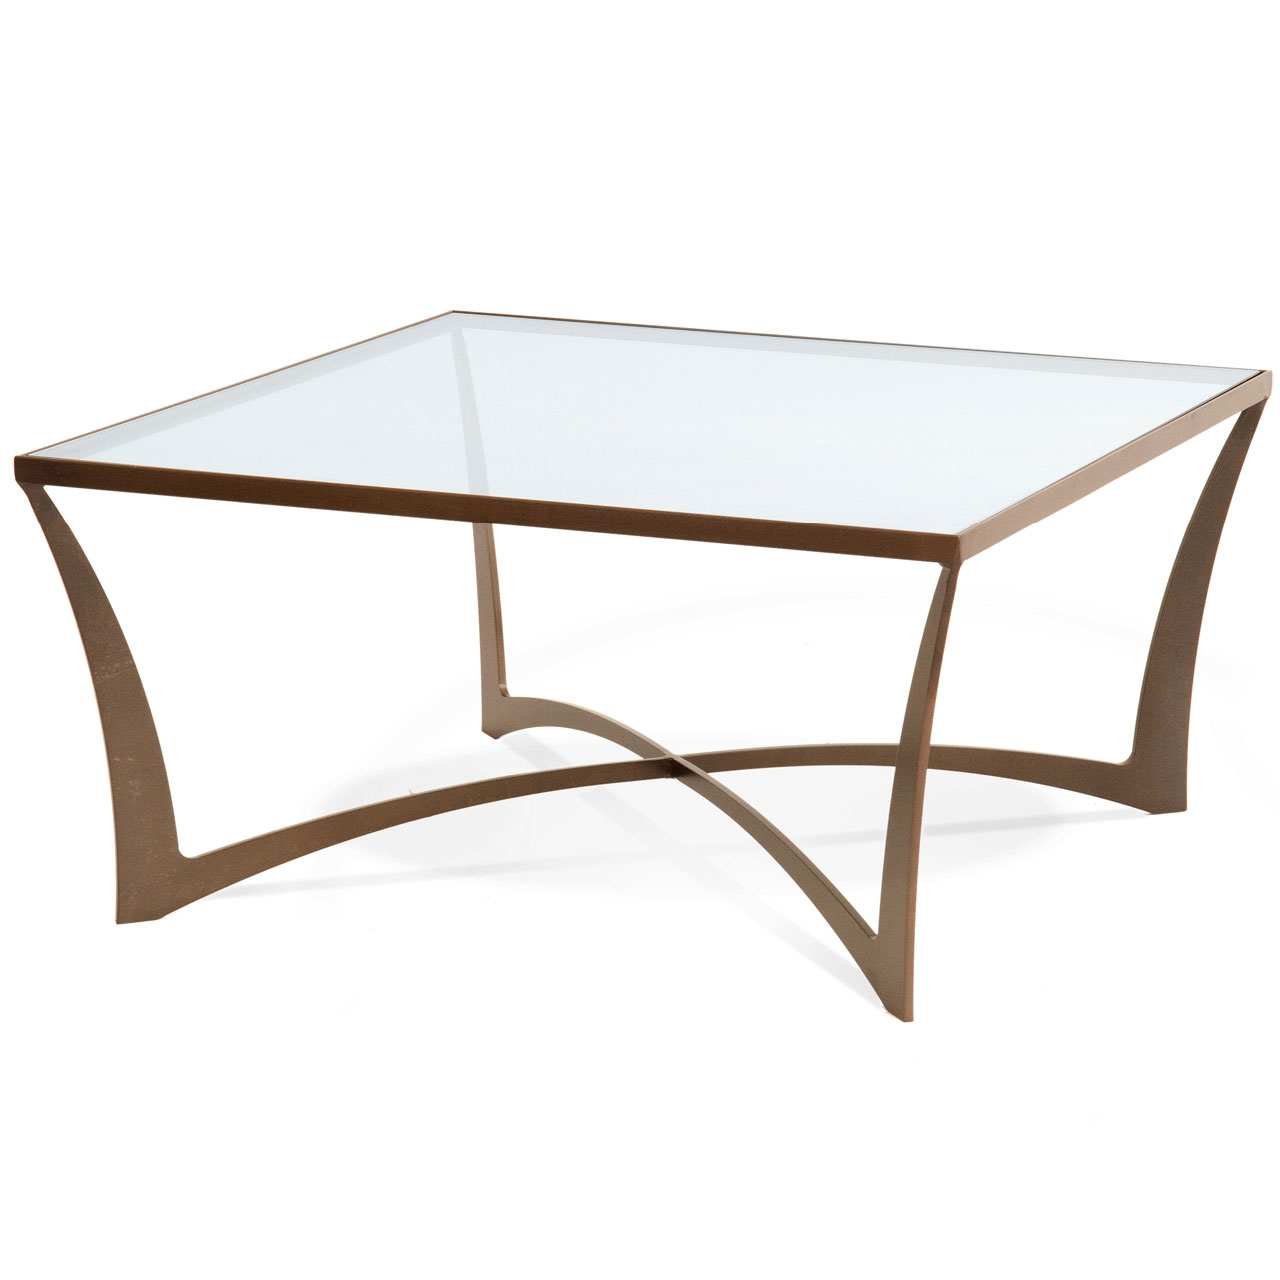 "Lotus 36"" Square Wrought Iron Cocktail Table"